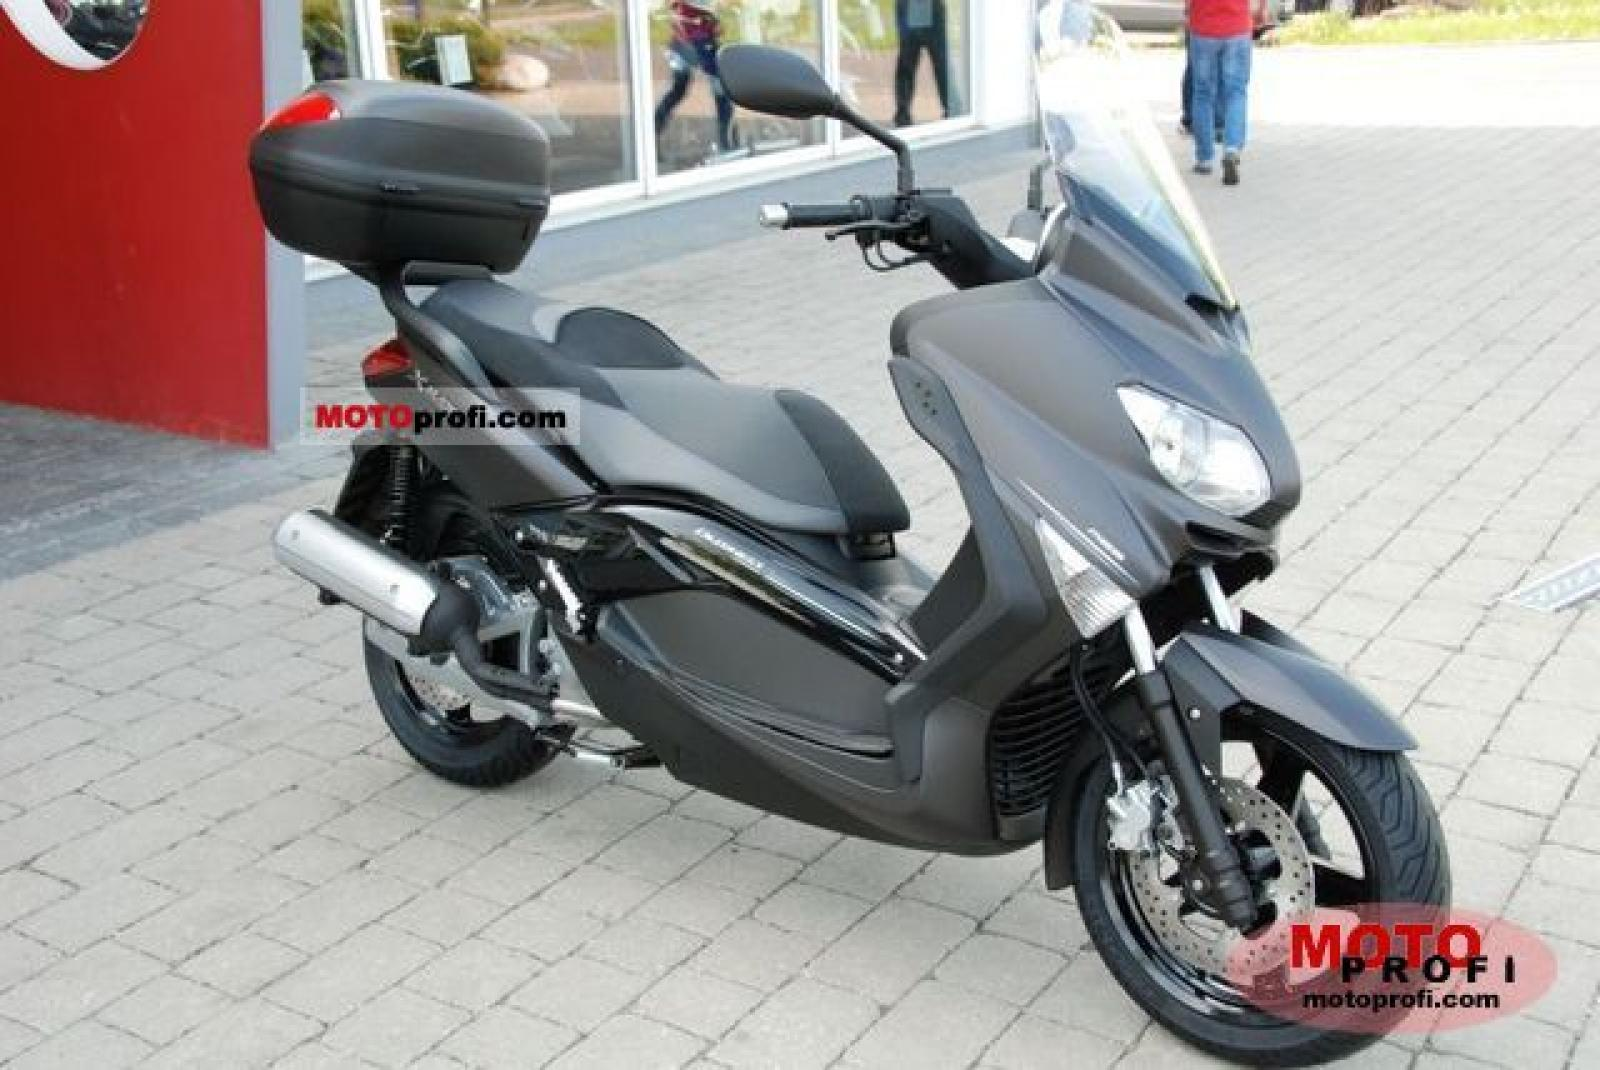 2011 Yamaha X-Max 125 ABS Business #2